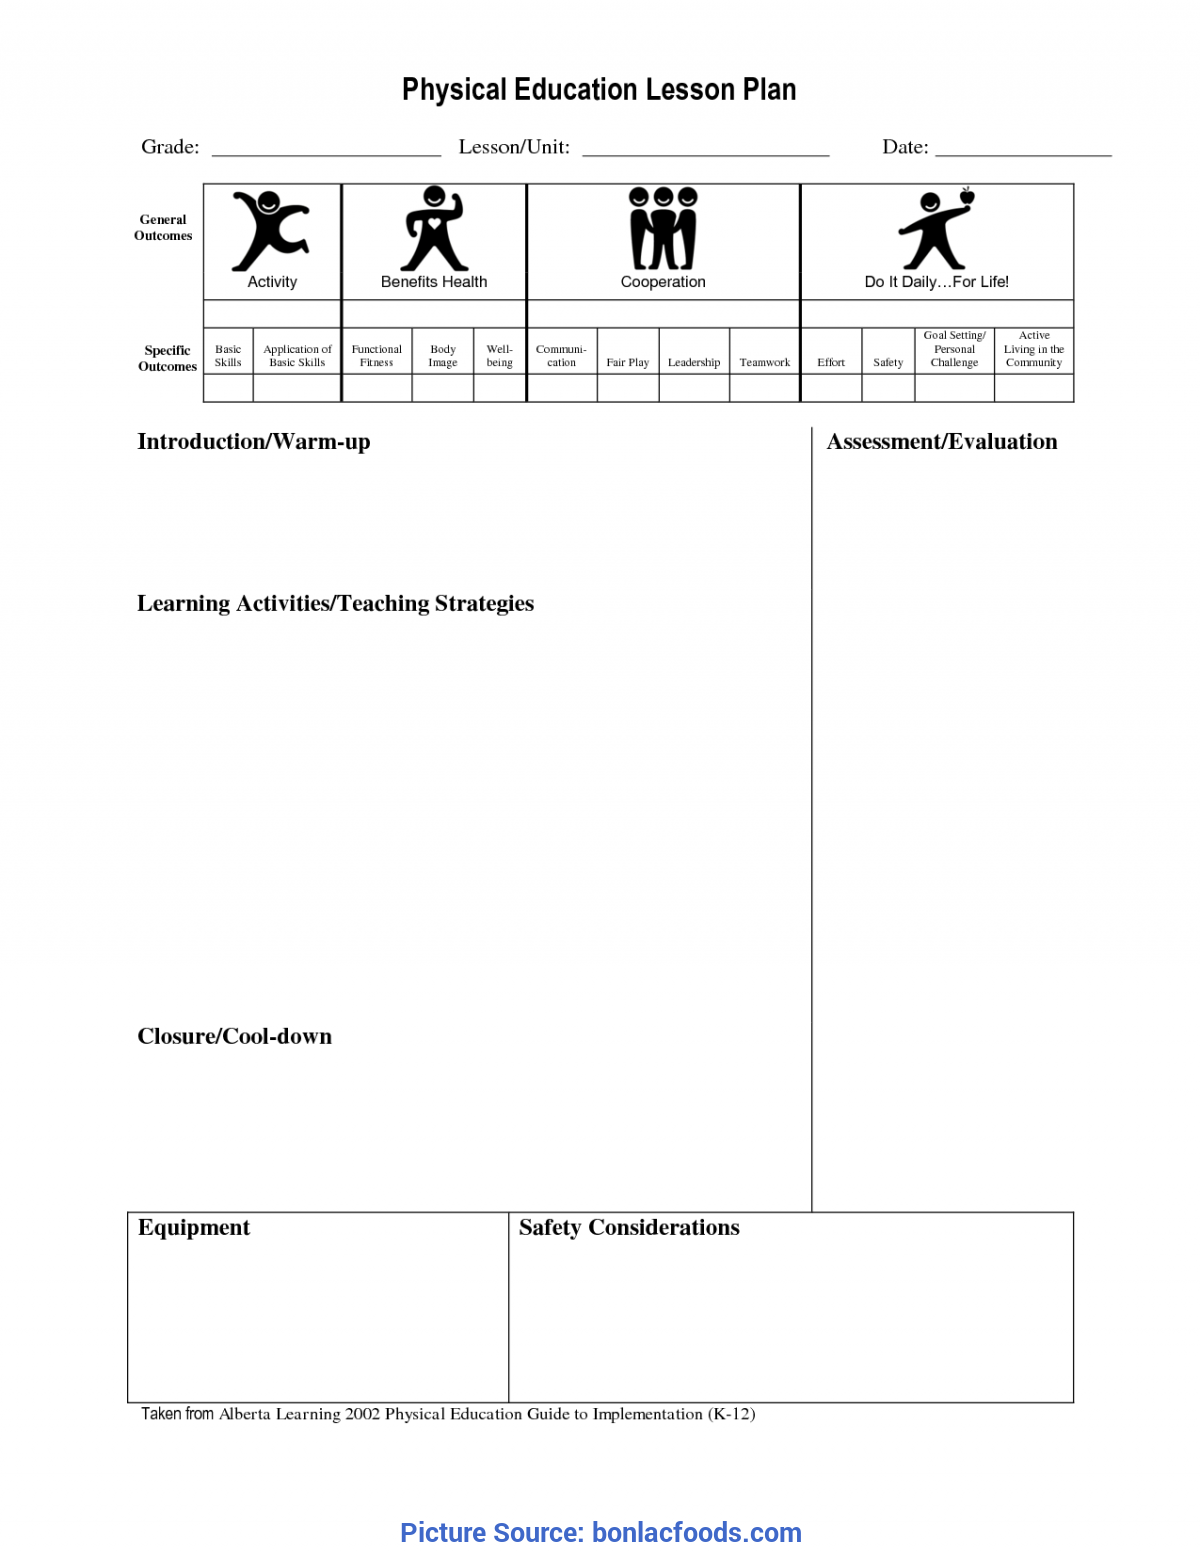 Trending Physical Education Lesson Plan Templates Blank Worksheets For All | Download And Share Worksheets | Free O